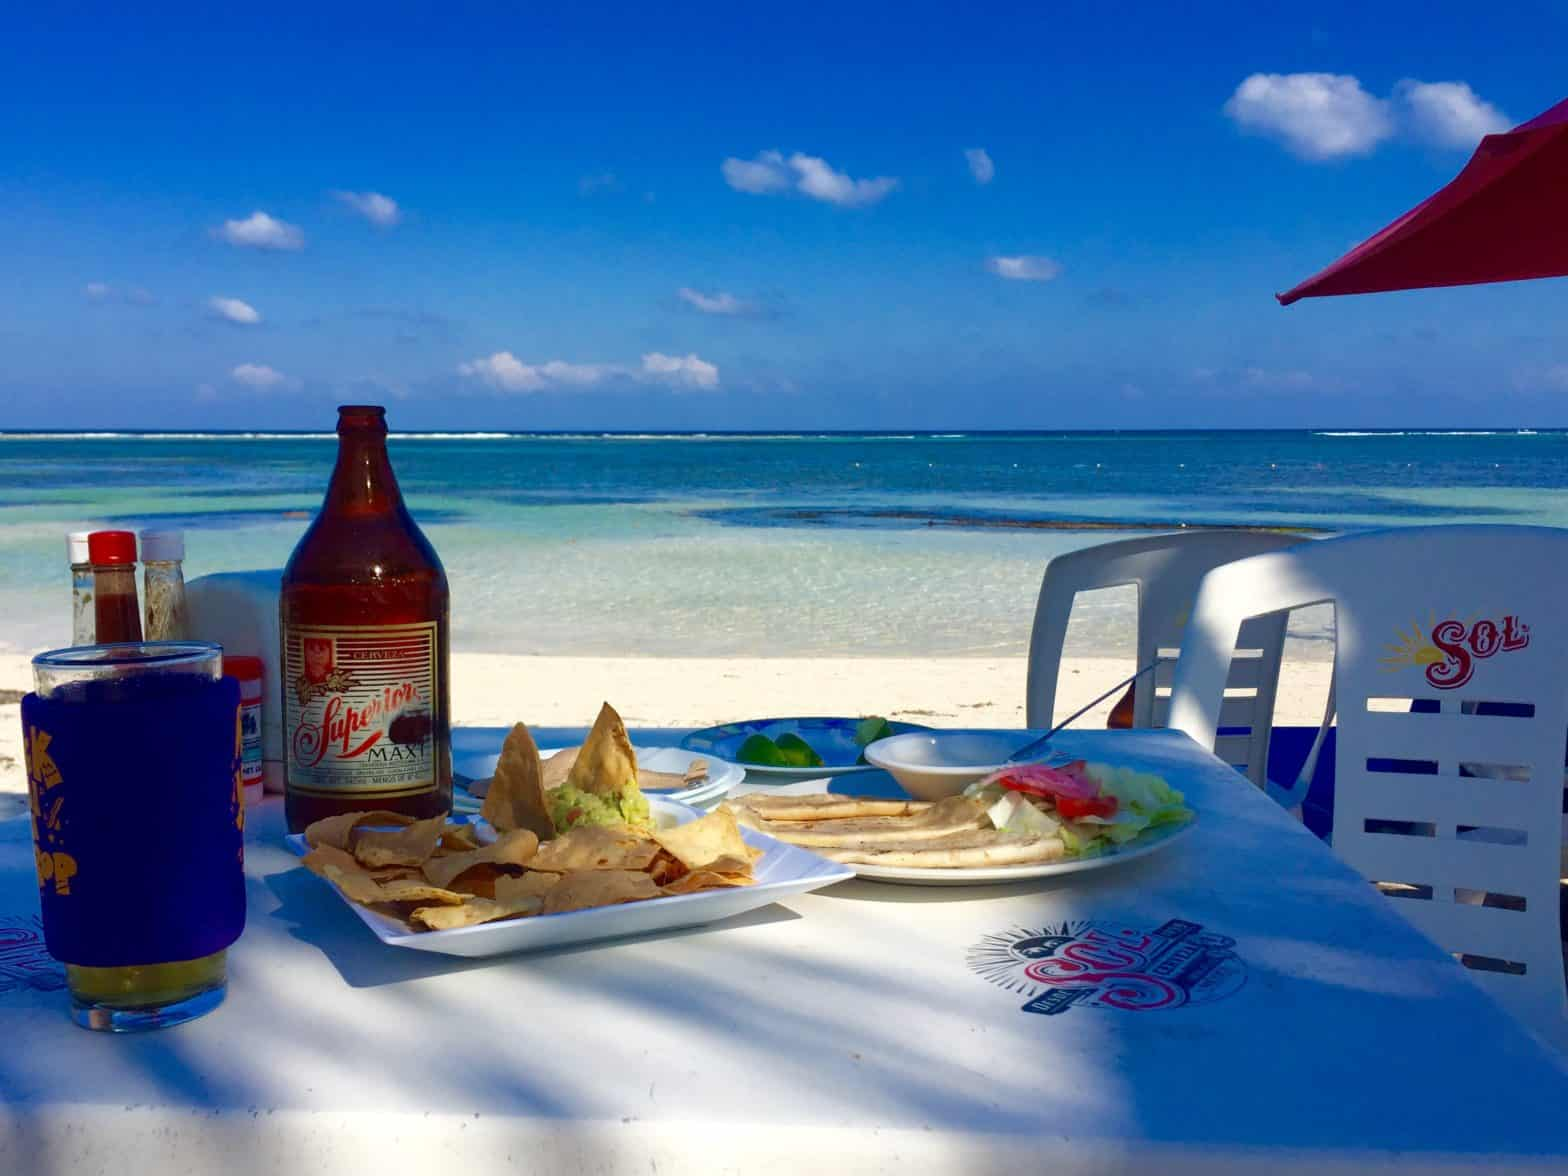 Best value meals under $6 in Mahahual, Mexico 1